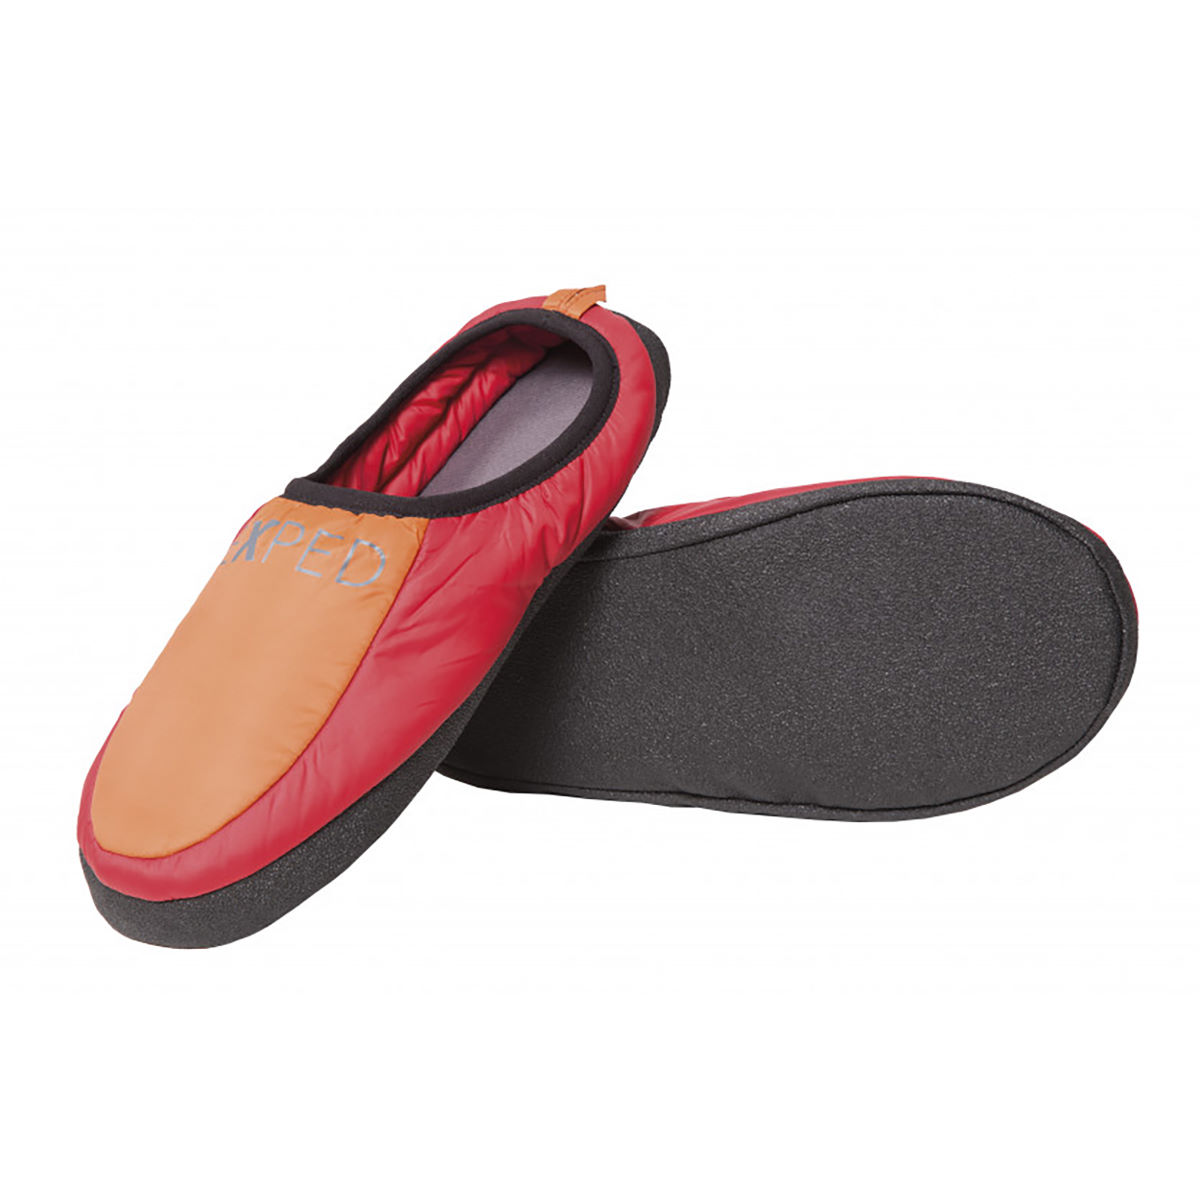 Exped Exped Camp Slipper   Slippers